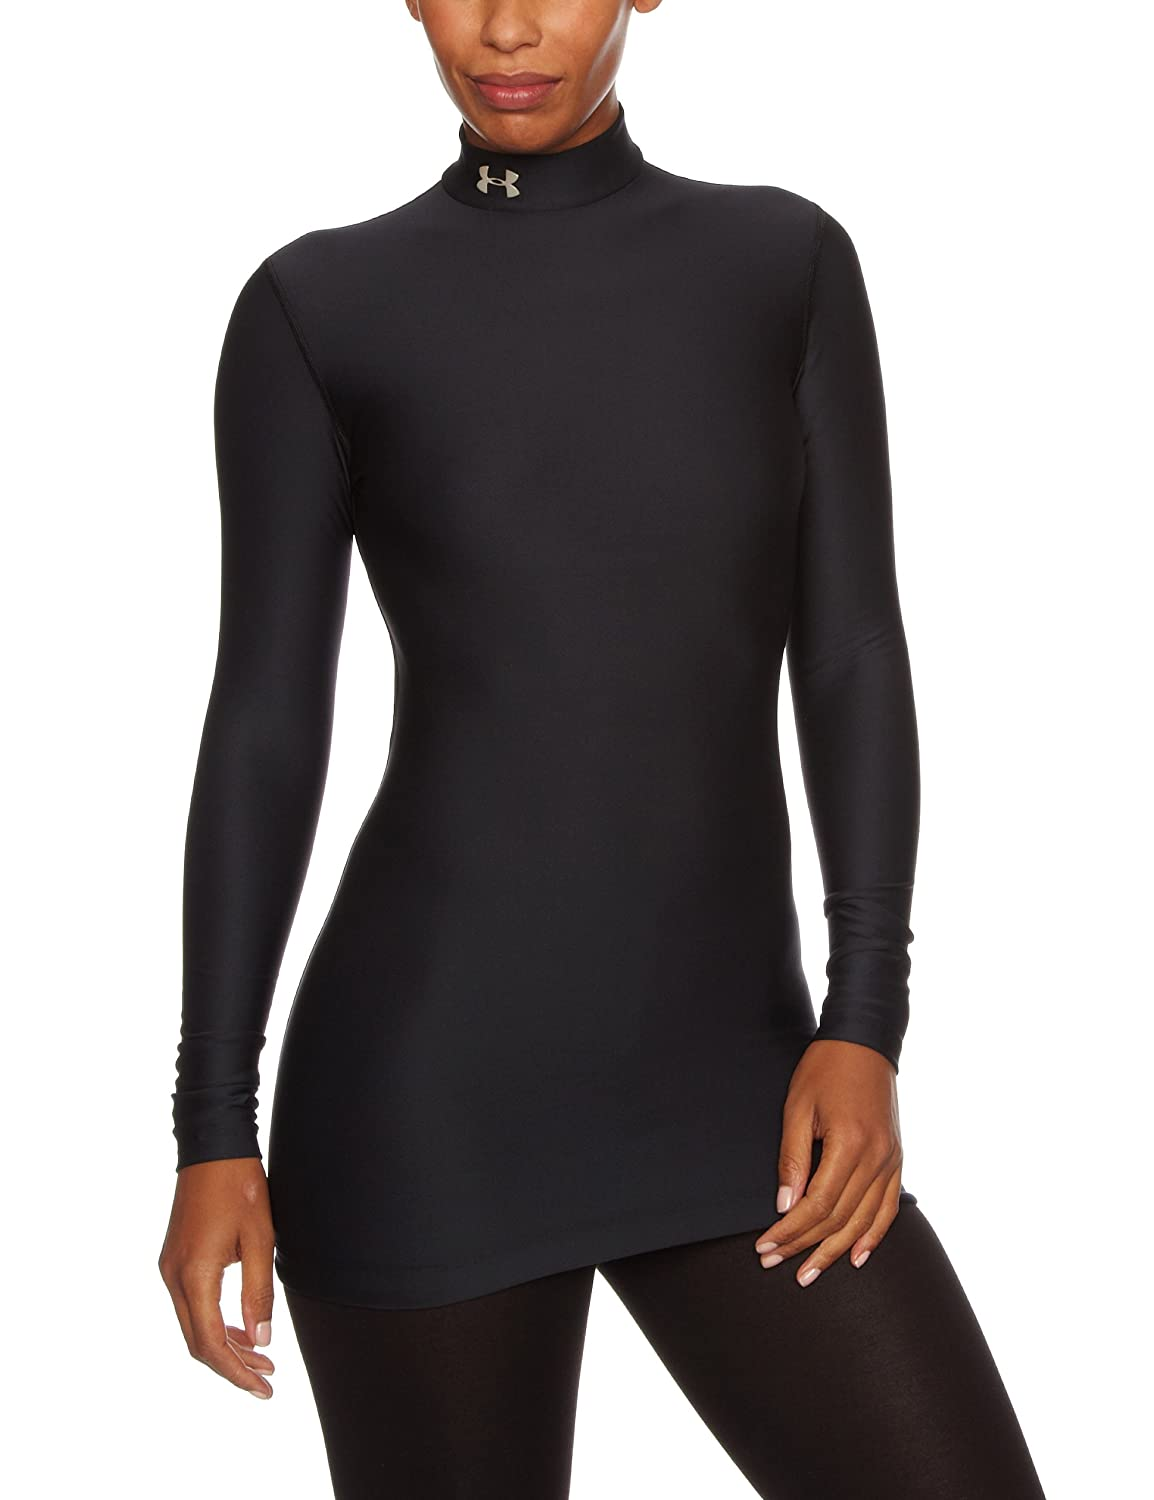 Under Armour Women's ColdGear Compression Mock, Black/Silver, Large Under Armour Apparel 1221816